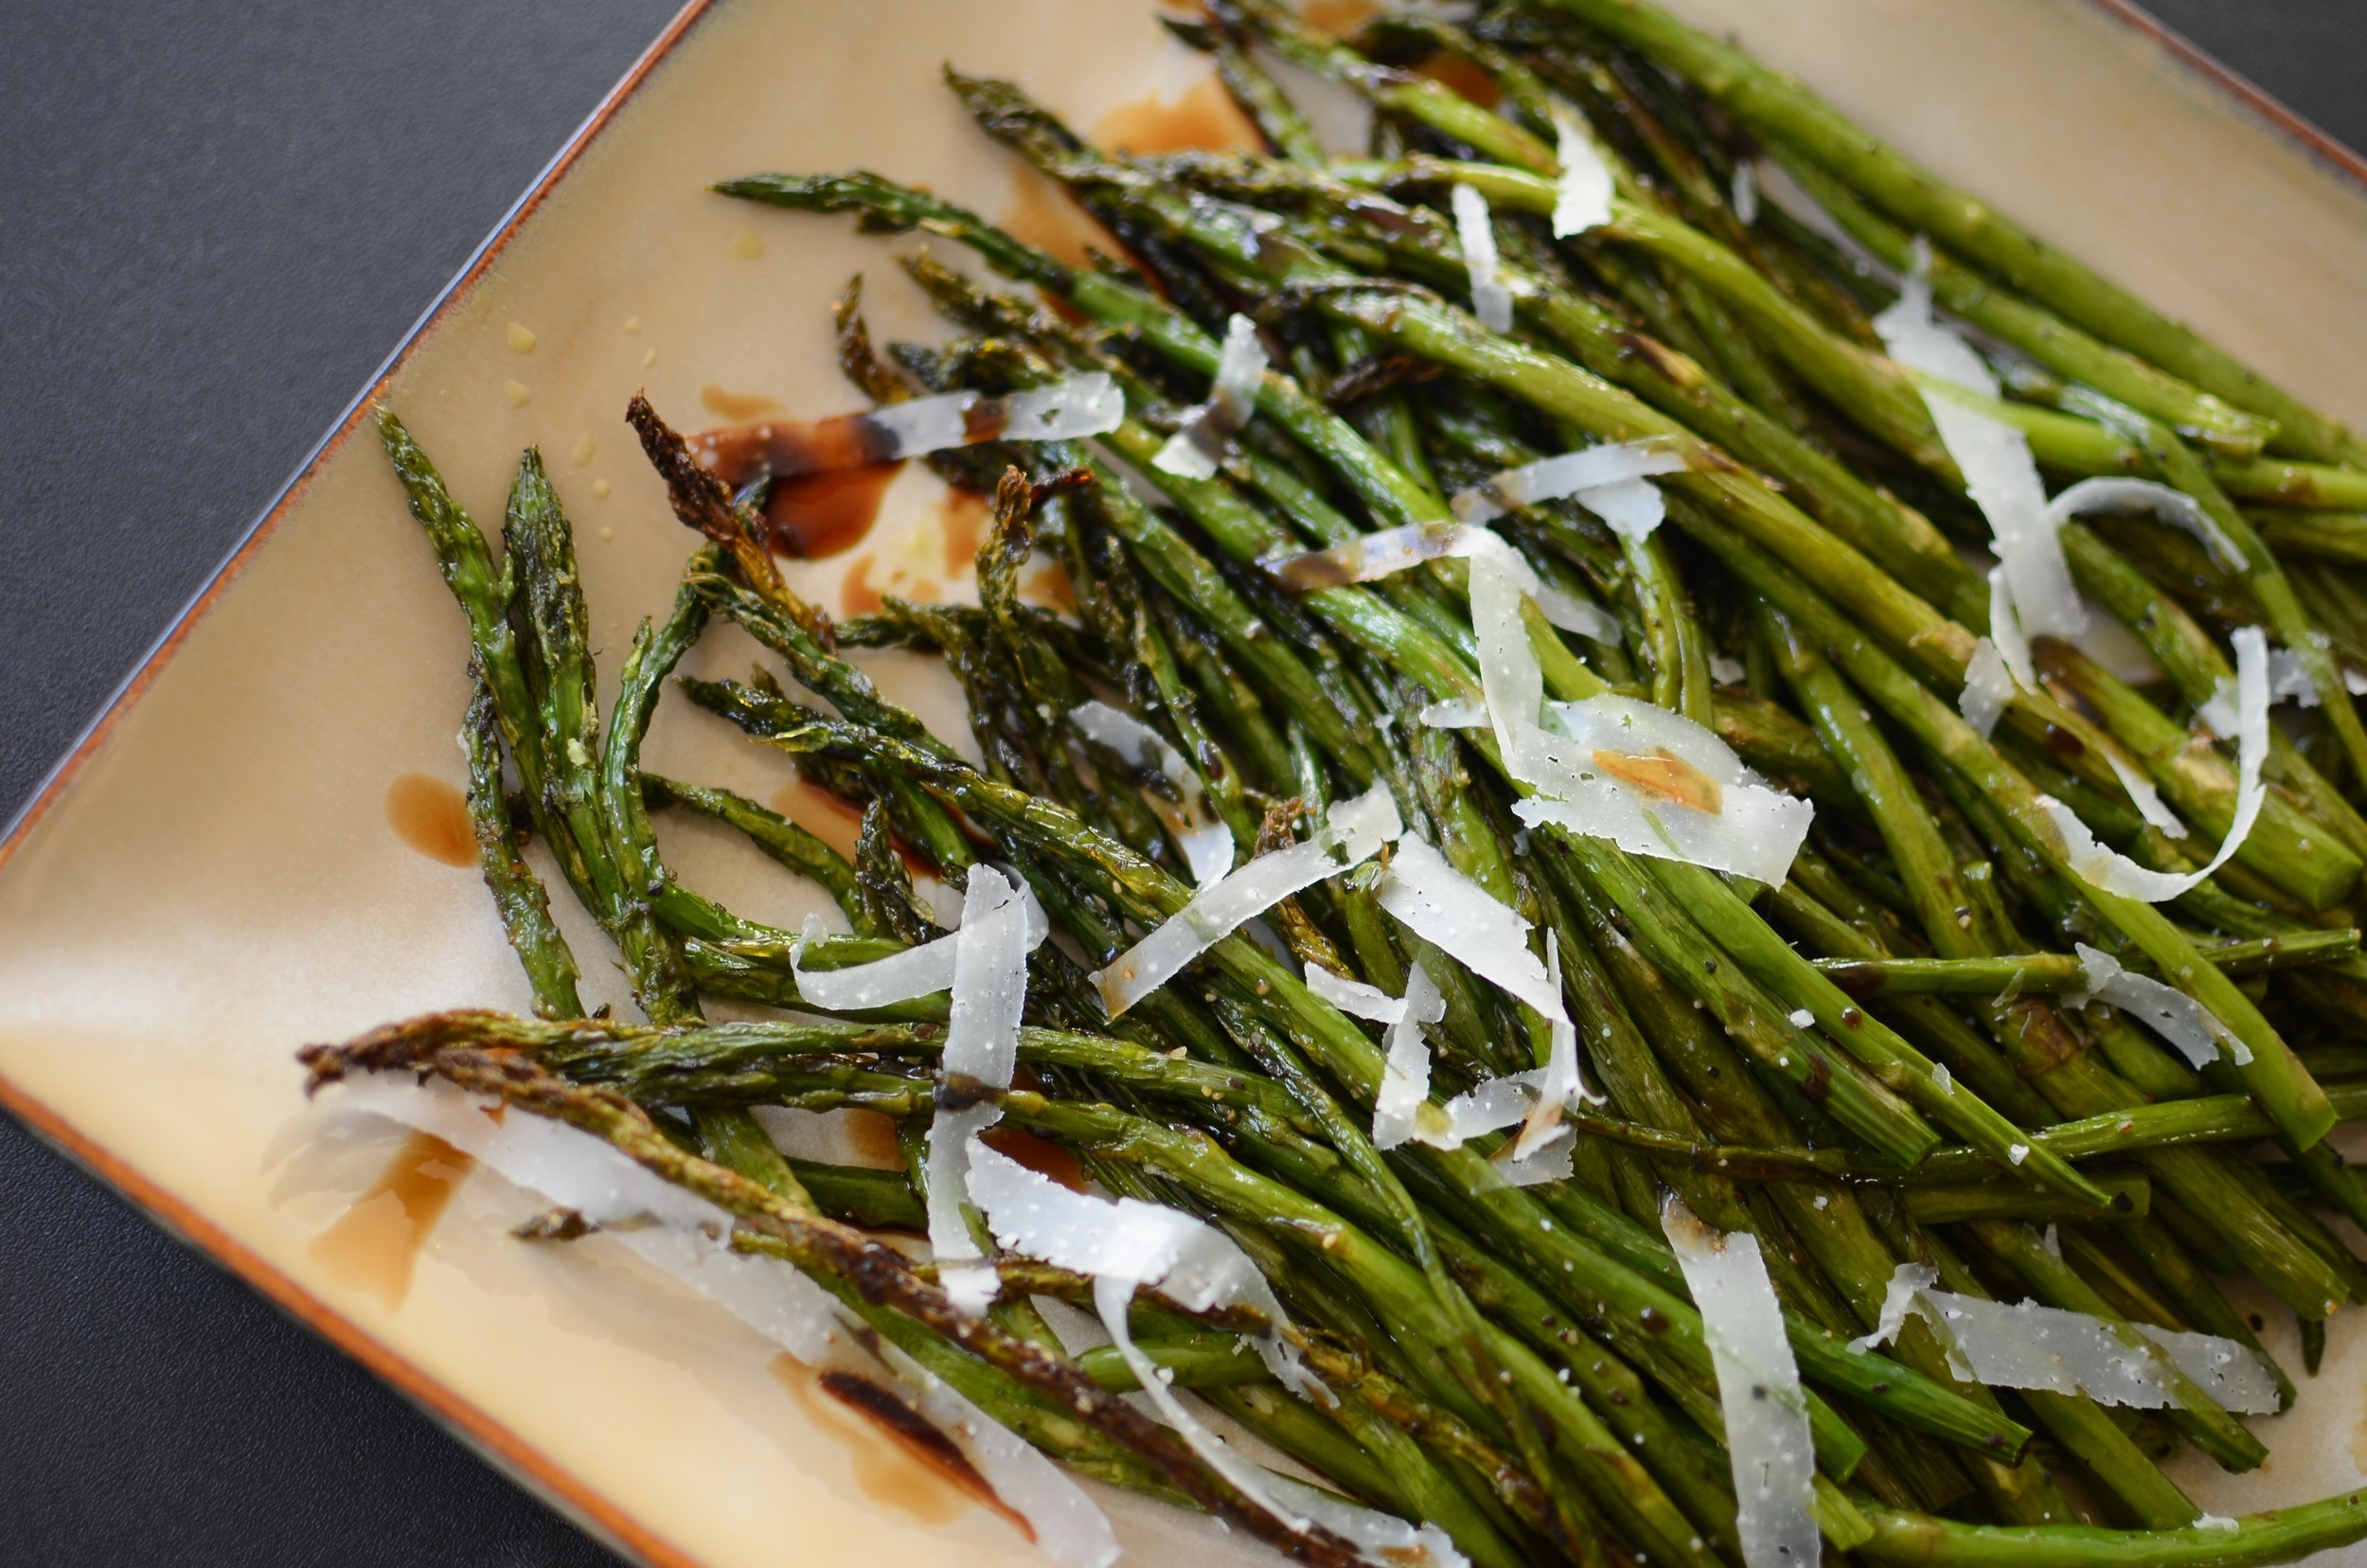 Pencil-Thin Asparagus - ButterYum. thin asparagus recipe. skinny asparagus recipe. how to roast asparagus.